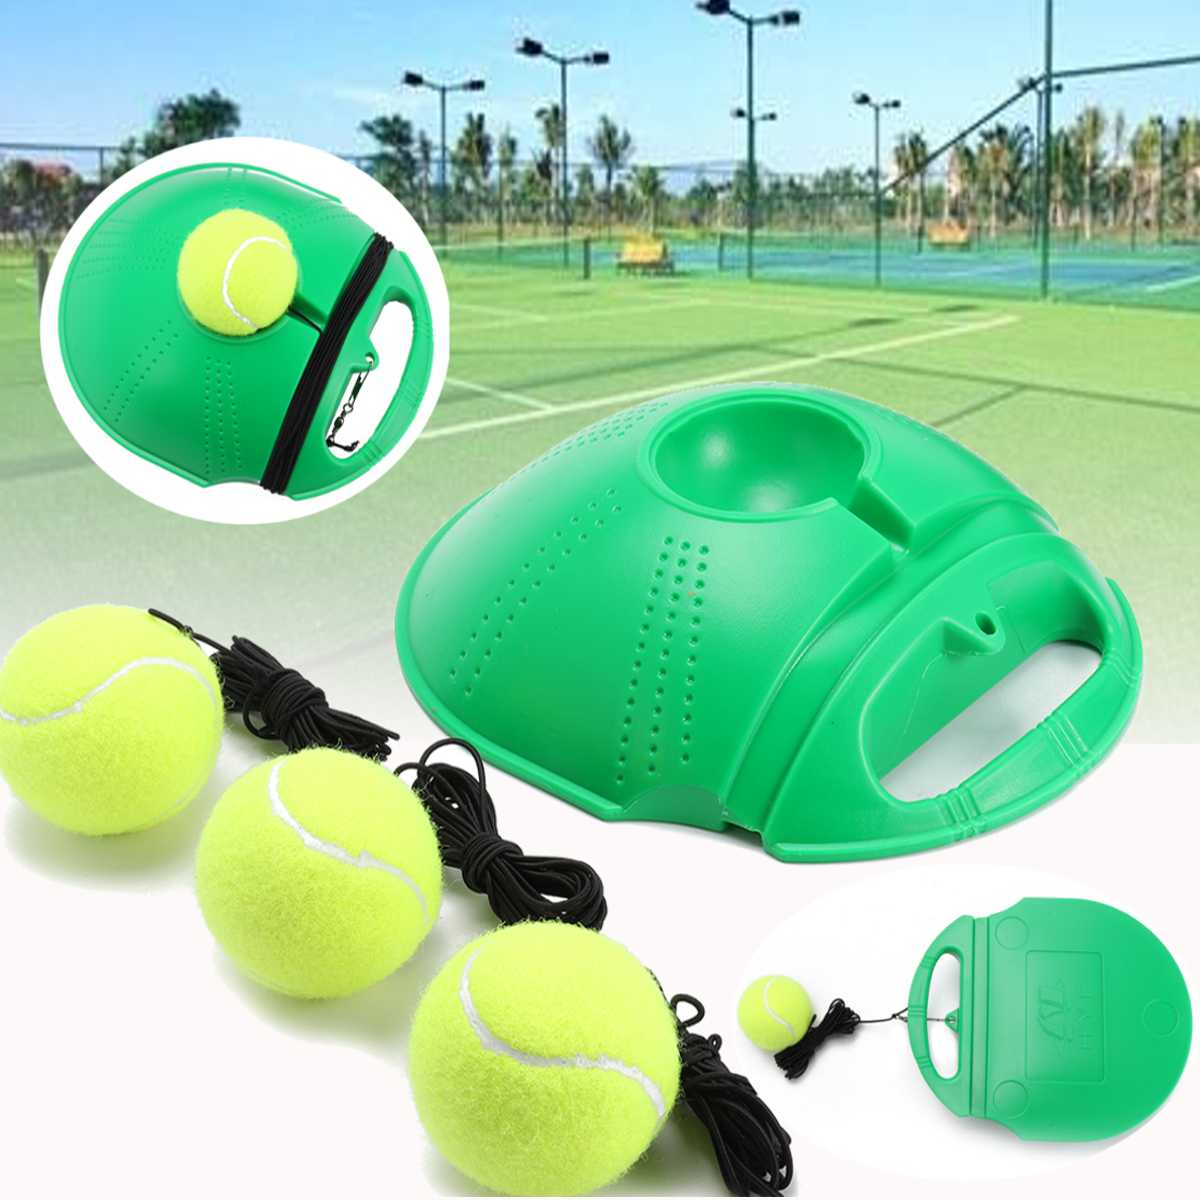 Tennis Trainer and Self-study Tennis Training Tool with Rebound Balls and Baseboard